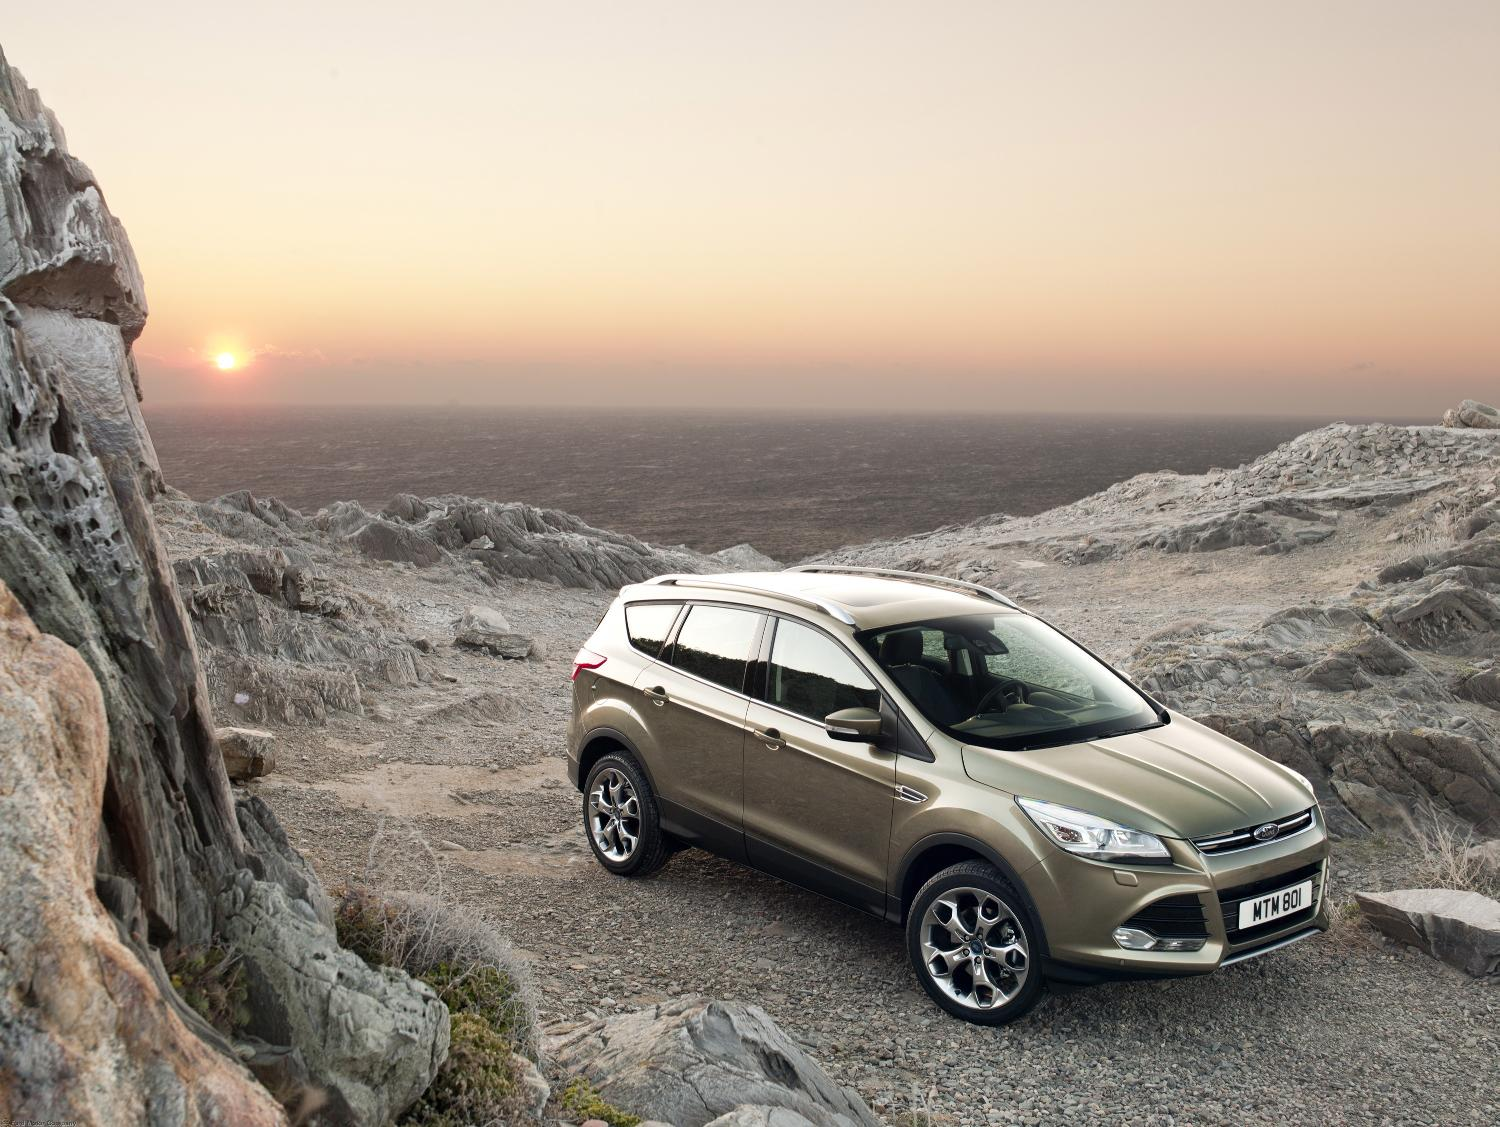 Platts hyundai used car dealership in high wycombe - All New Ford Kuga Delivers Innovation And Improved Fuel Efficiency For 1 000 Less Than The Outgoing Model